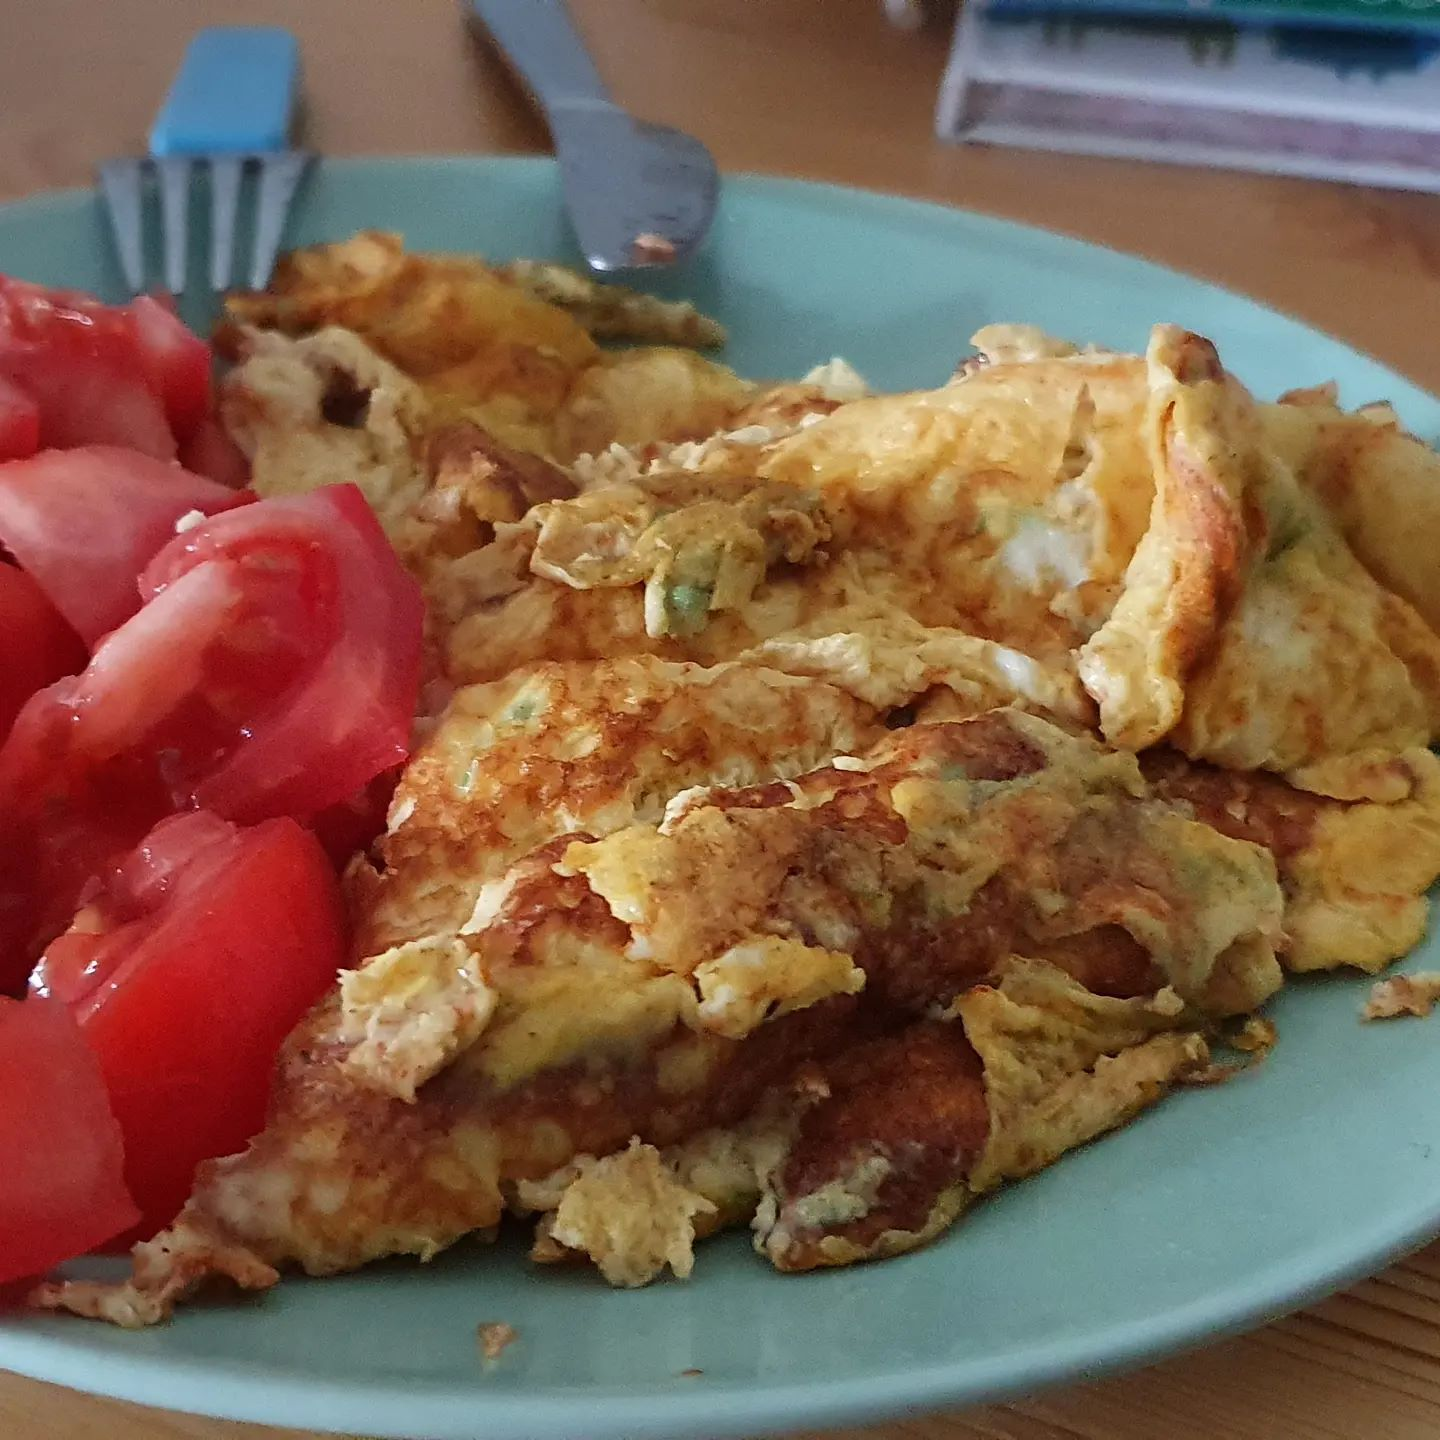 Sometimes a simple(ish) omlette does wonders, even if it's not